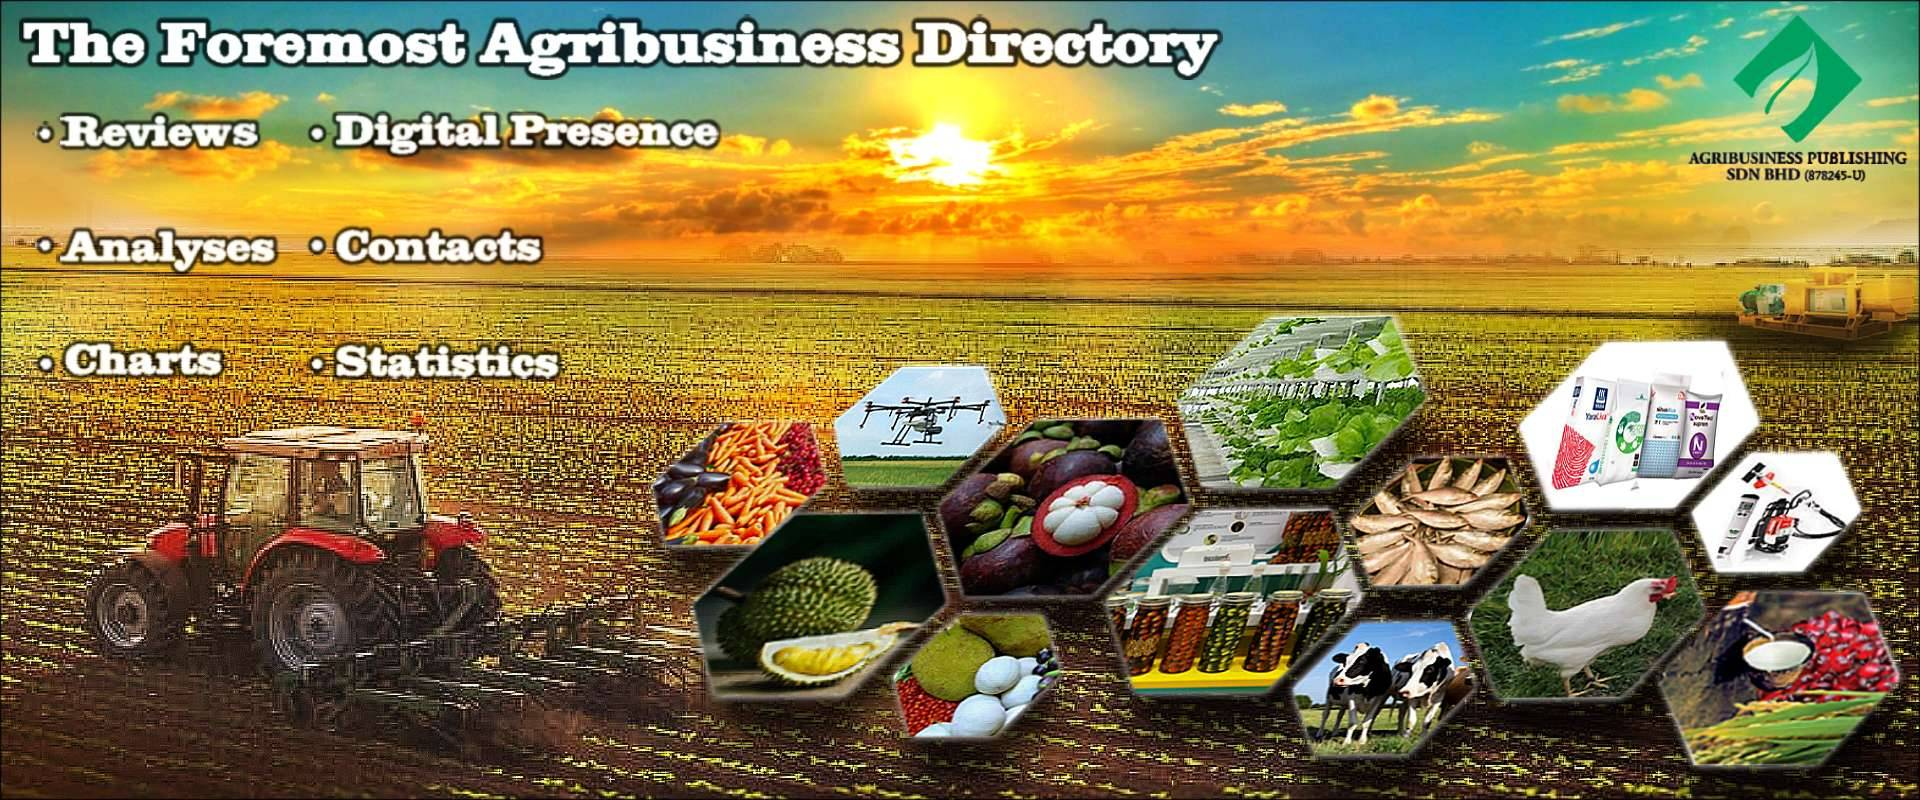 The Foremost Agribusiness Directory